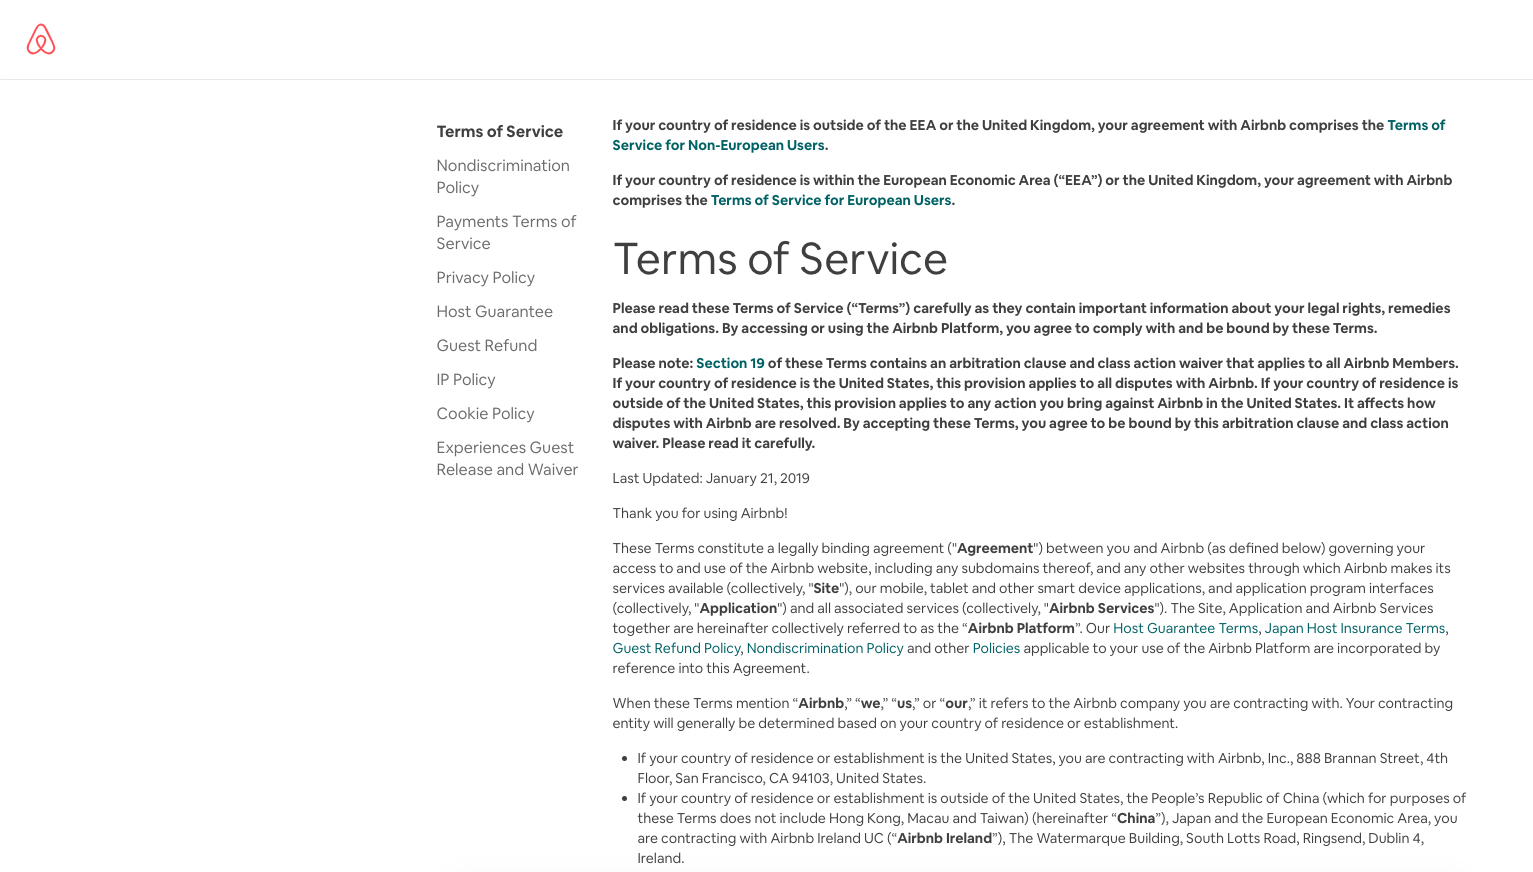 Airbnb terms and conditions page